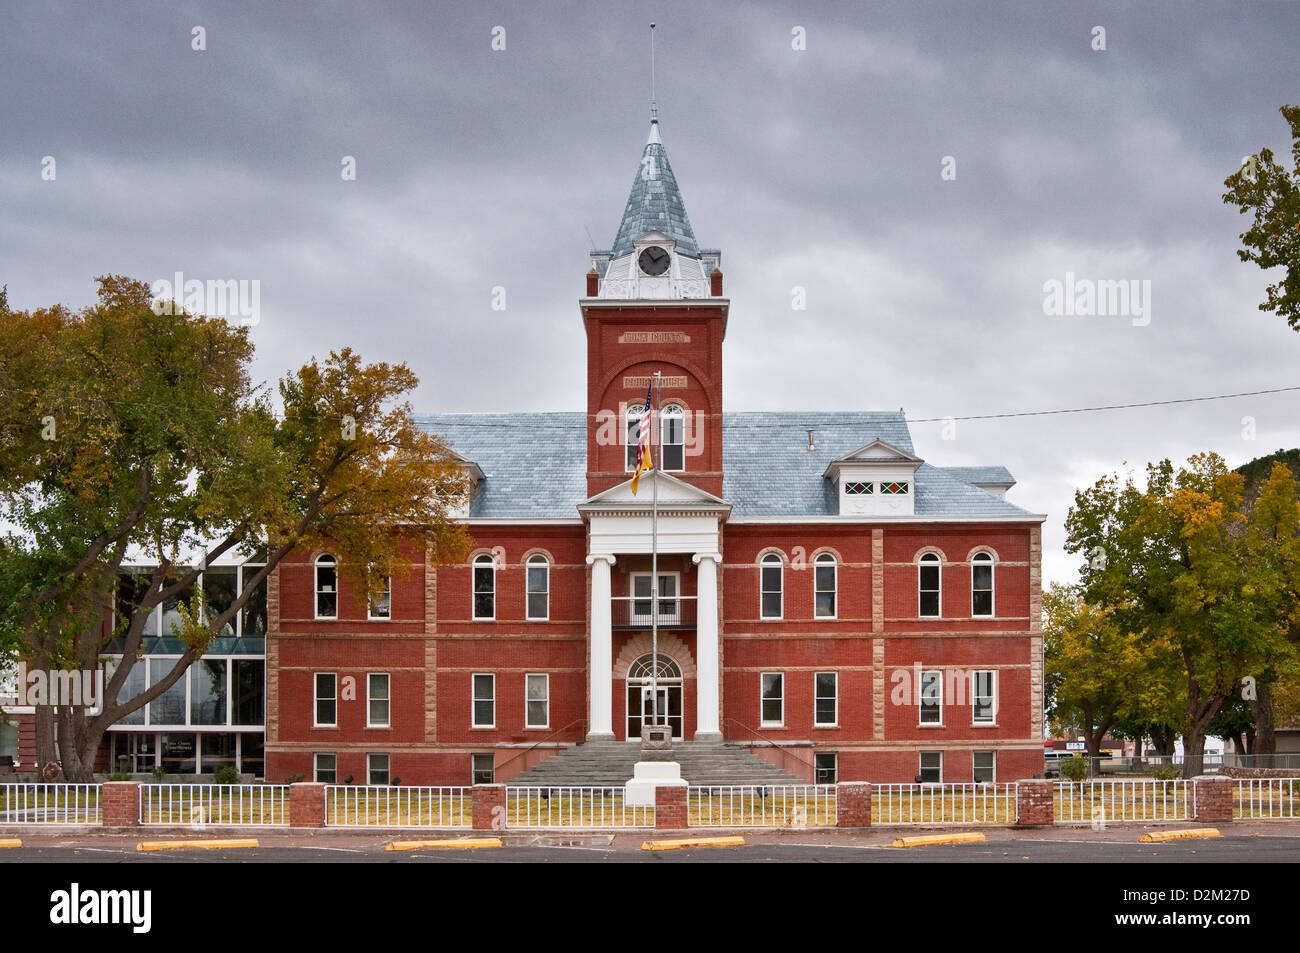 New mexico luna county columbus -  Columbus Sub Station Luna County Courthouse In Deming New Mexico Usa Stock Photo